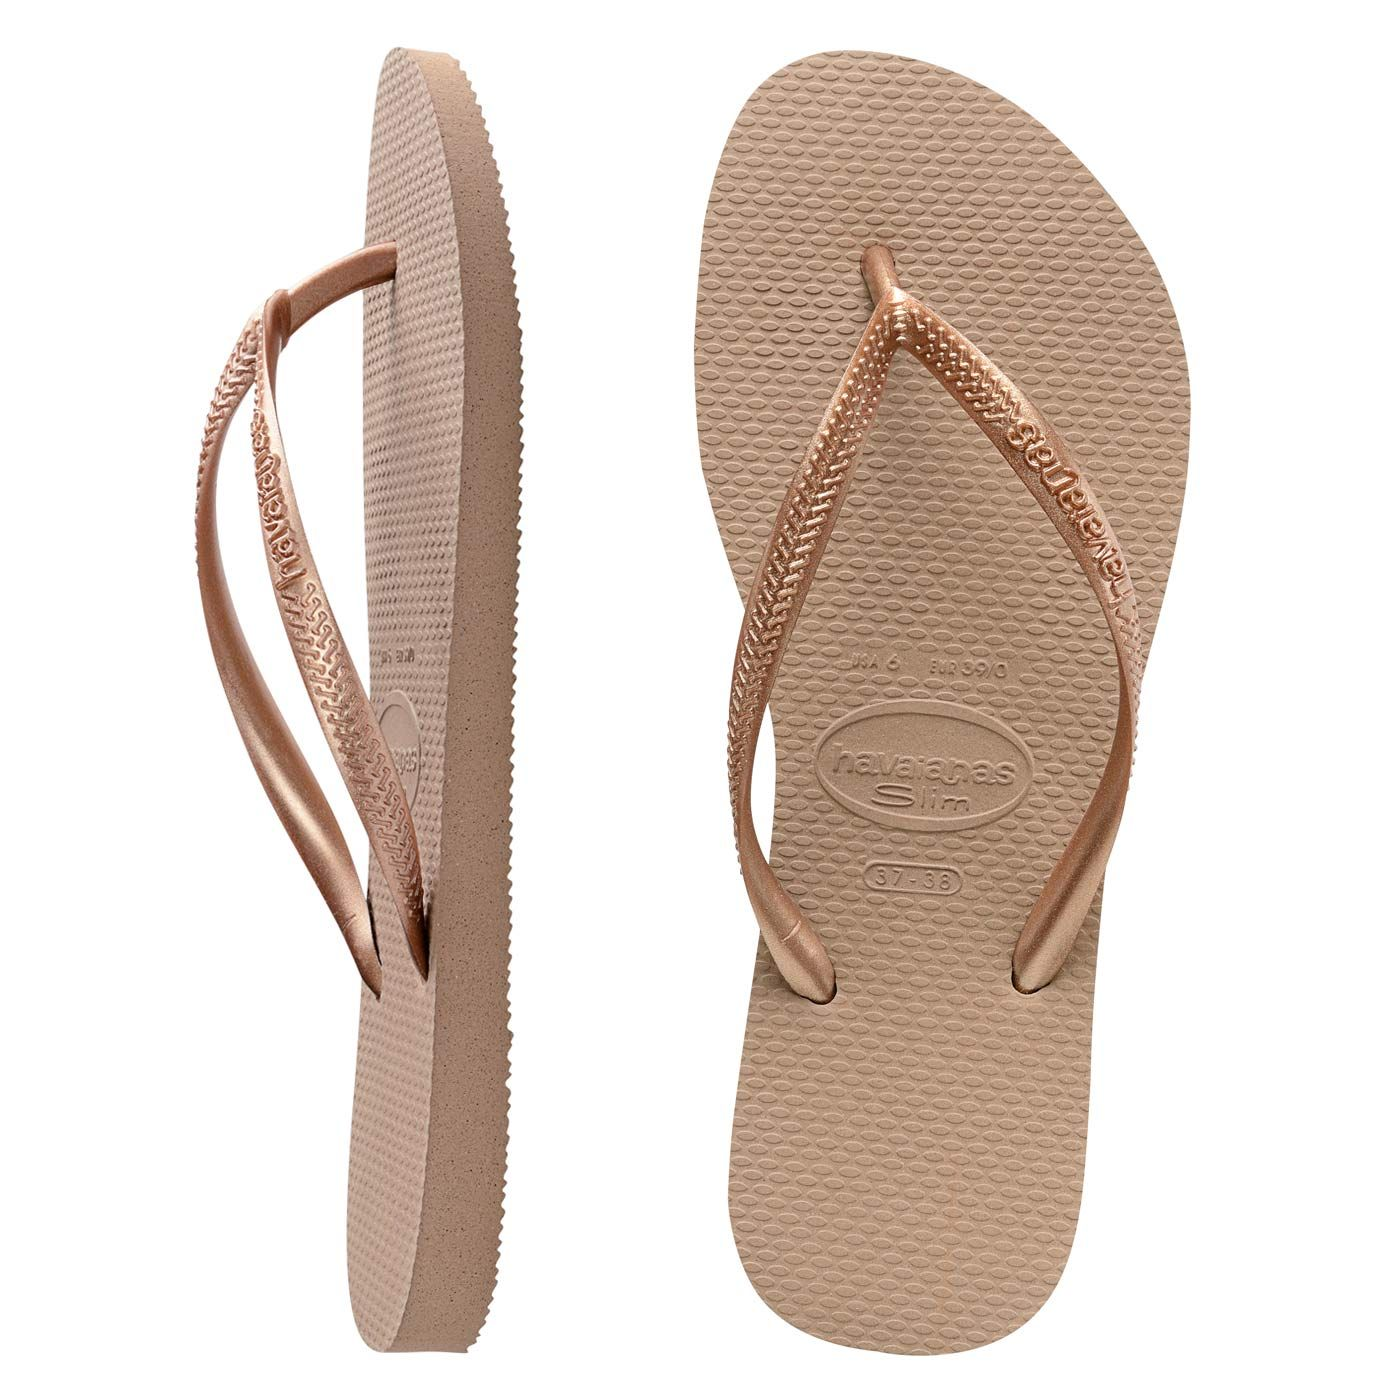 b6d0f4266 Havaianas Slim Metallic Rose Gold. Colour yourself happy in Slim Metallic  brights! Brazilian rubber slim Havaianas in fetching rose gold